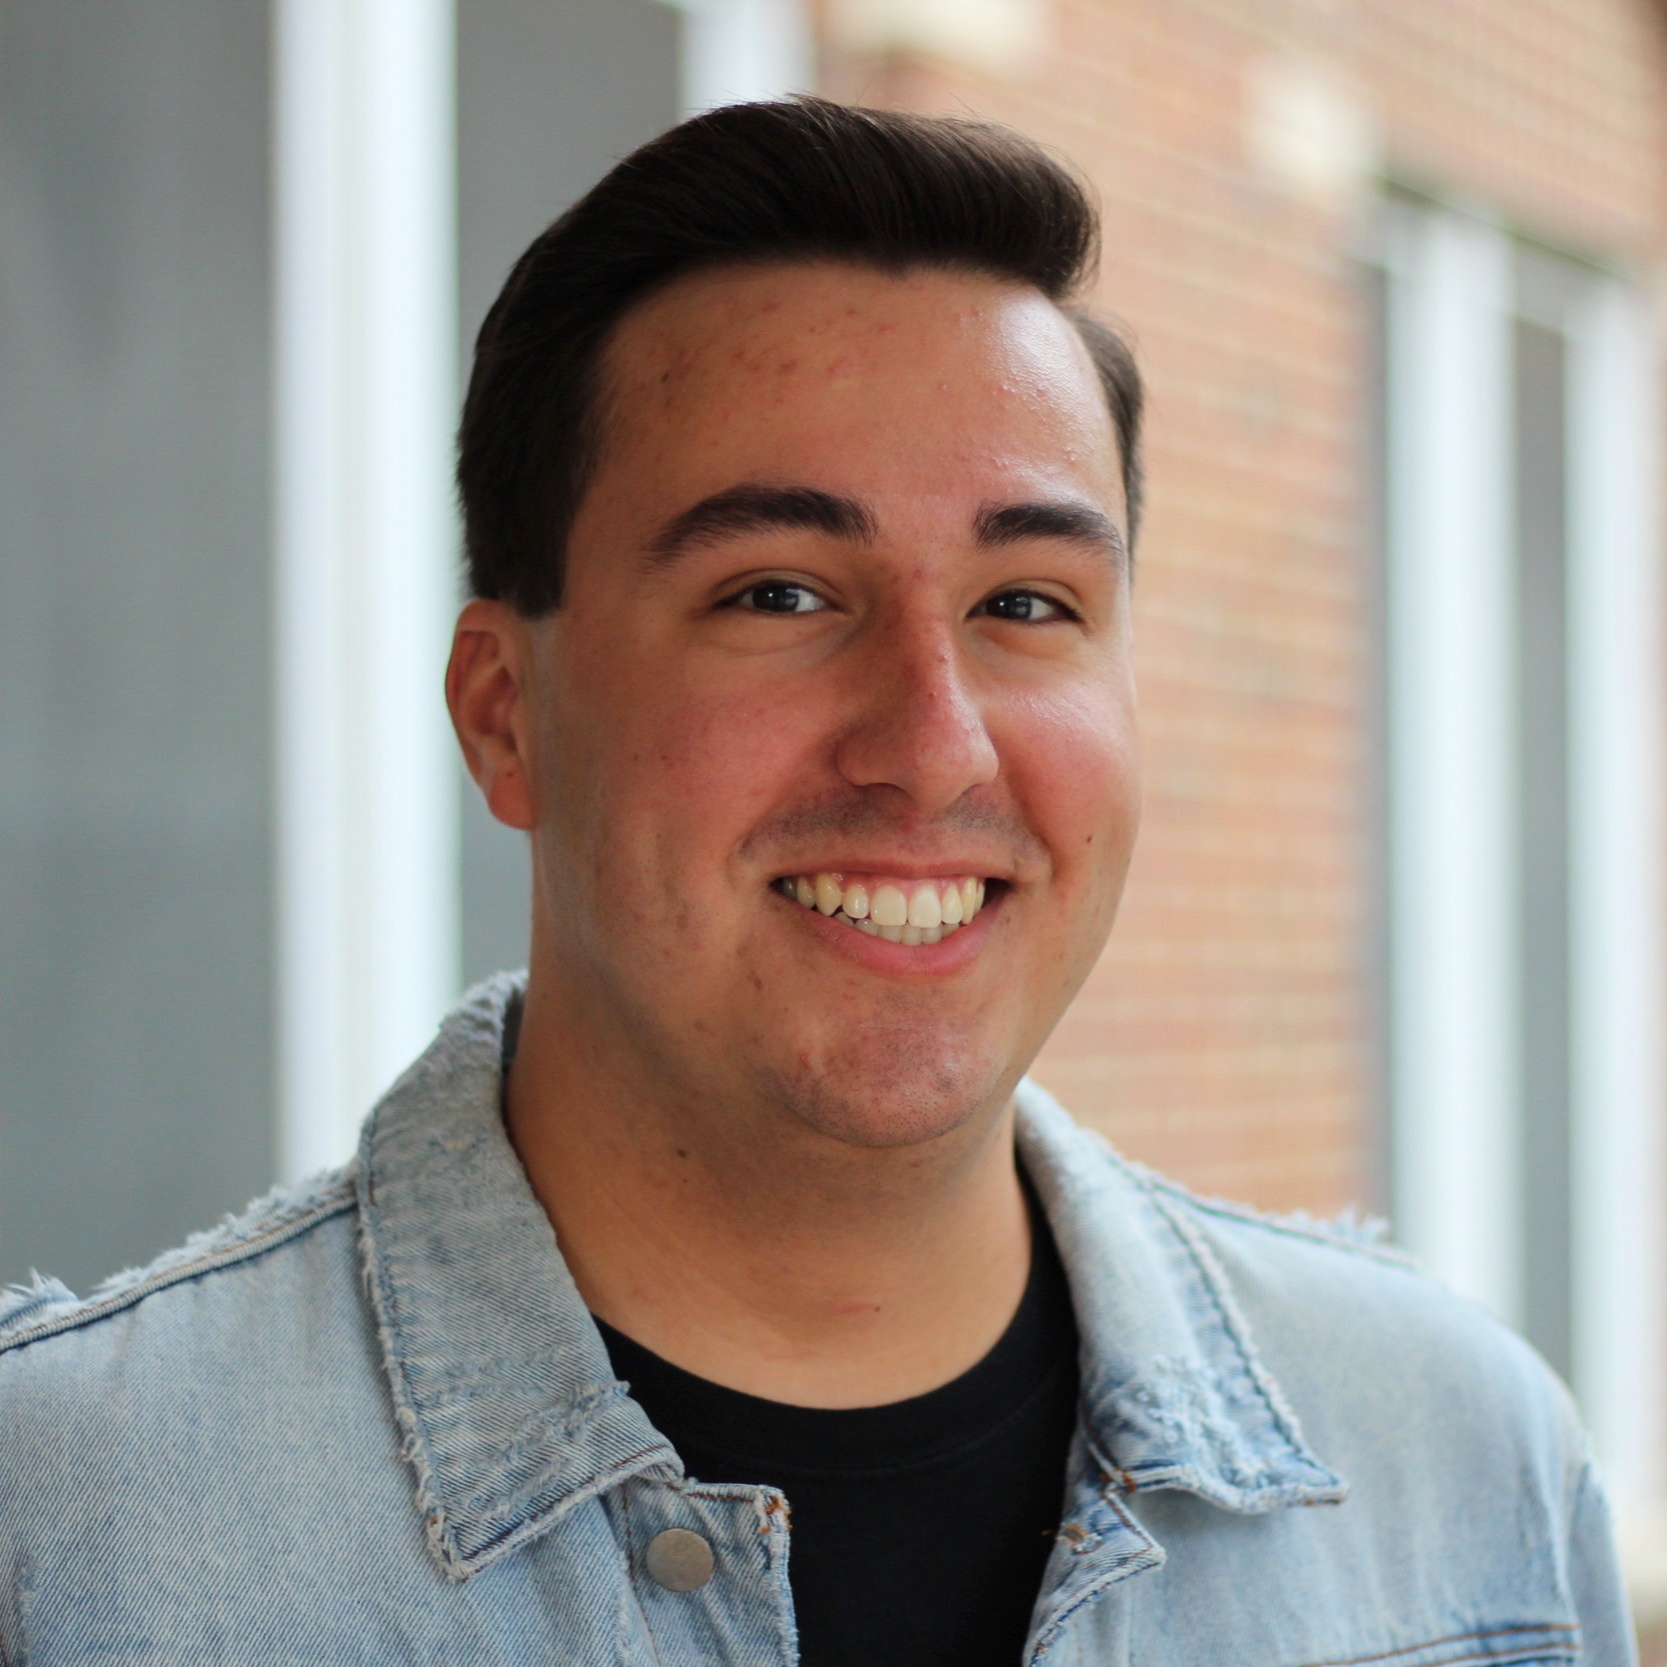 Dylan Beams - 3rd Floor VirginiaDylan is a rising Senior from Frisco, Texas double majoring in Biology and Psychology with minors in Business Administration and Chemistry on the Pre-Health Track. Outside of being an RA in VS, he is also the Family Weekend Chair of Student Foundation, the Business Director of Southern Gentlemen A Cappella, the Membership Vice President and Public Relations Chair of Alpha Phi Omega Service Fraternity, and does research in a lab on campus. His favorite event is Sunday Night Snacks because of the great food and community that can be found there.